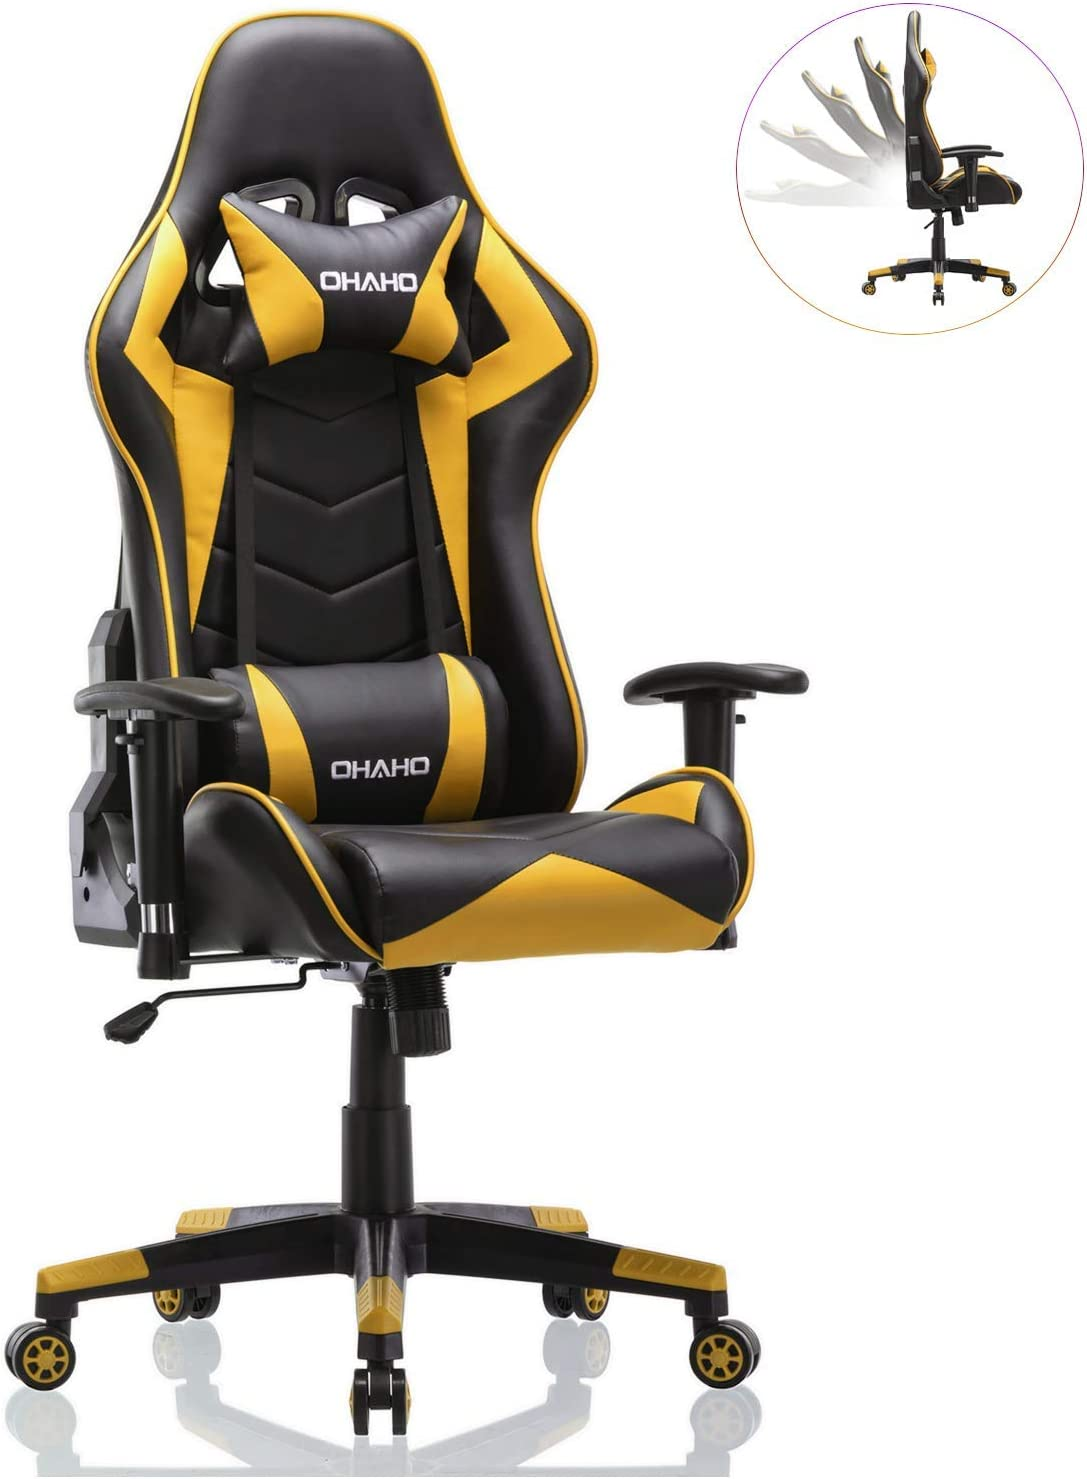 OHAHO Gaming Chair Racing Style Office Chair Adjustable Lumbar Cushion Swivel Rocker Recliner PU Leather High Back Ergonomic Computer Desk Chair with Retractable Armrest Yellow